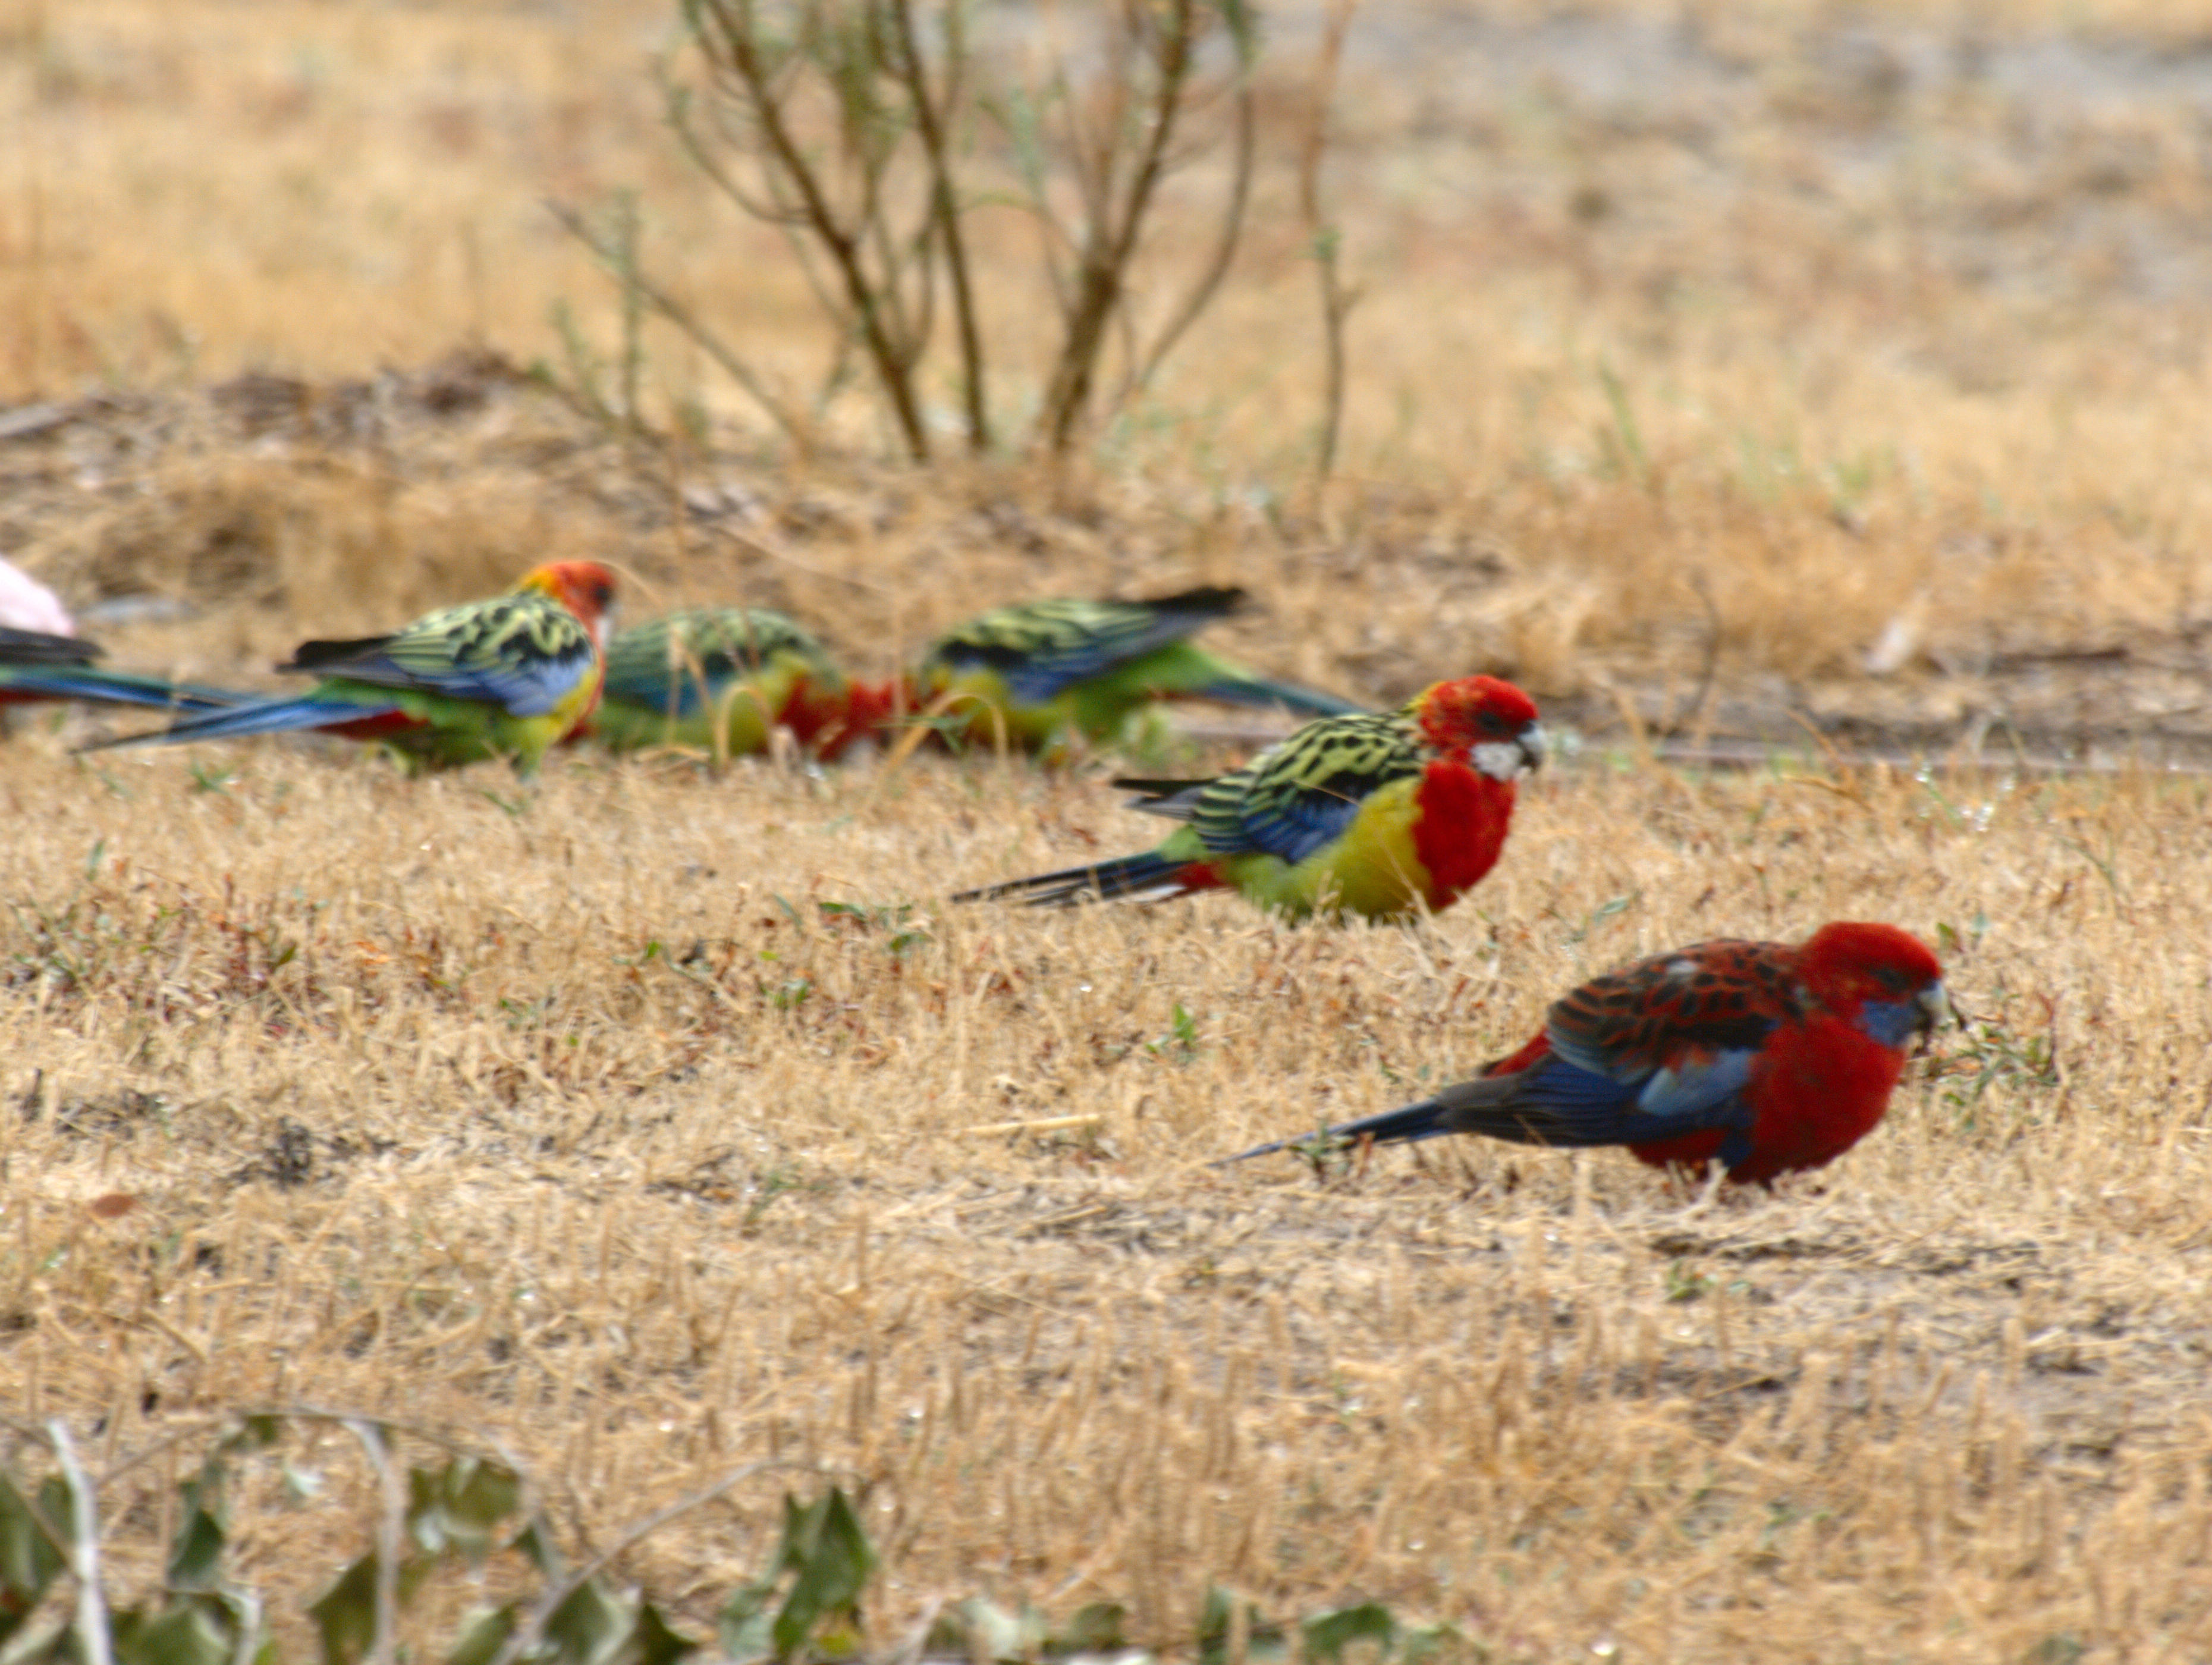 This should be rosellas-1.jpeg.  Is it missing?